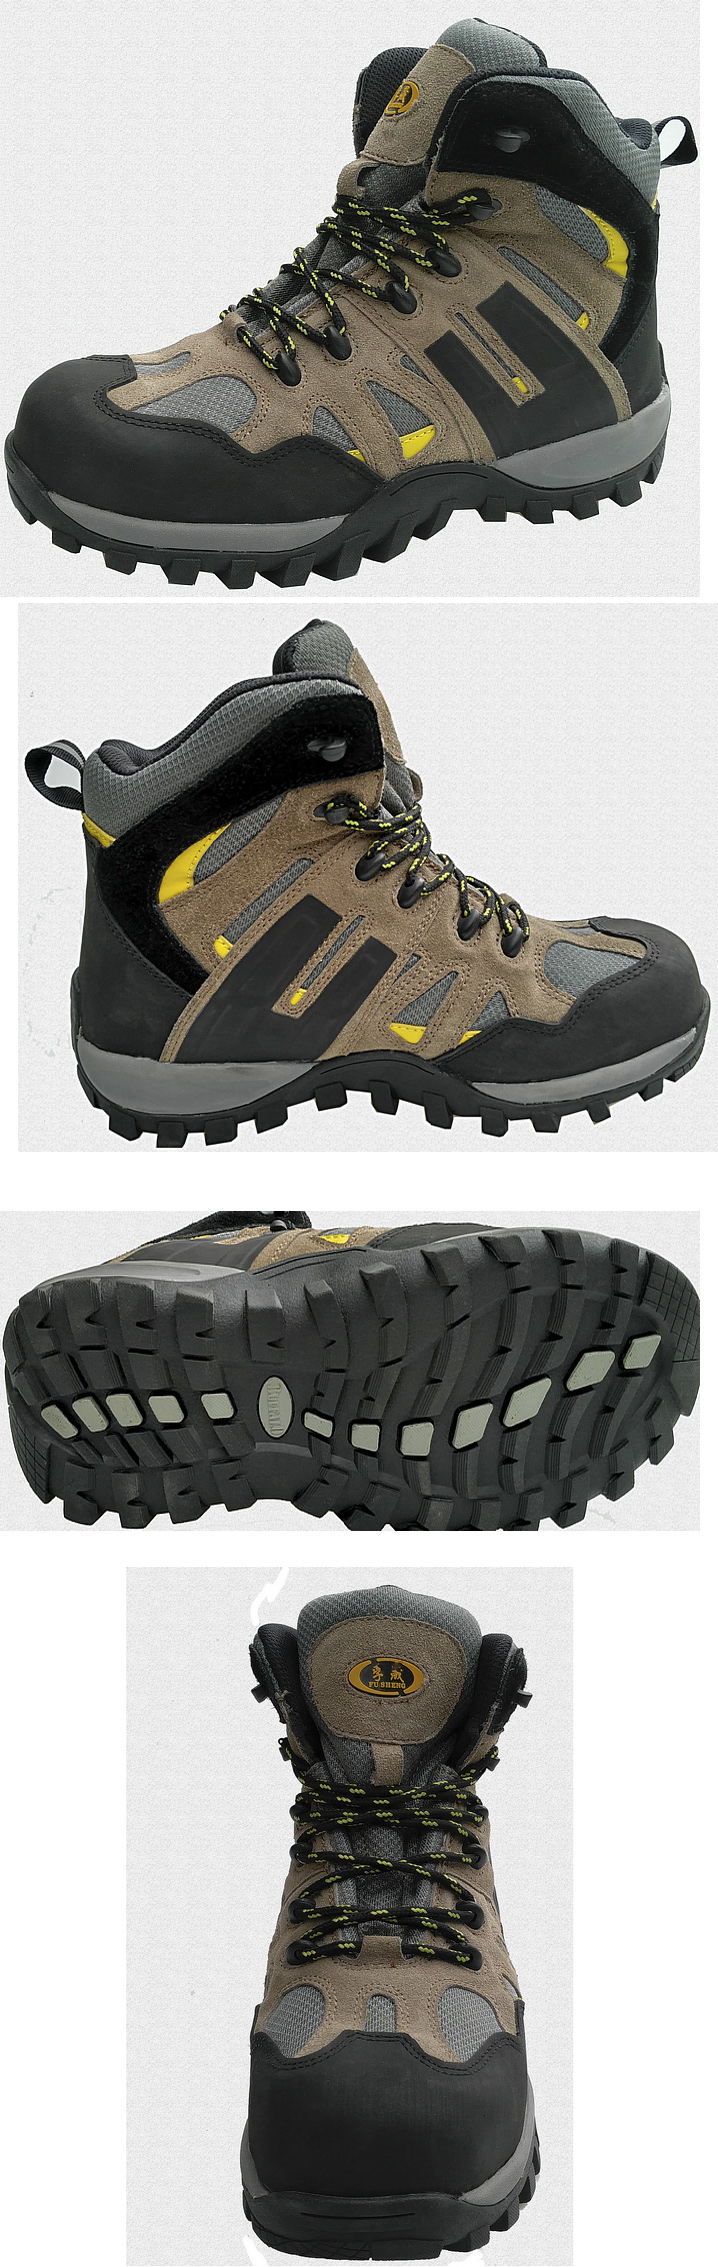 Fatory Price Safetoe Safety Shoes